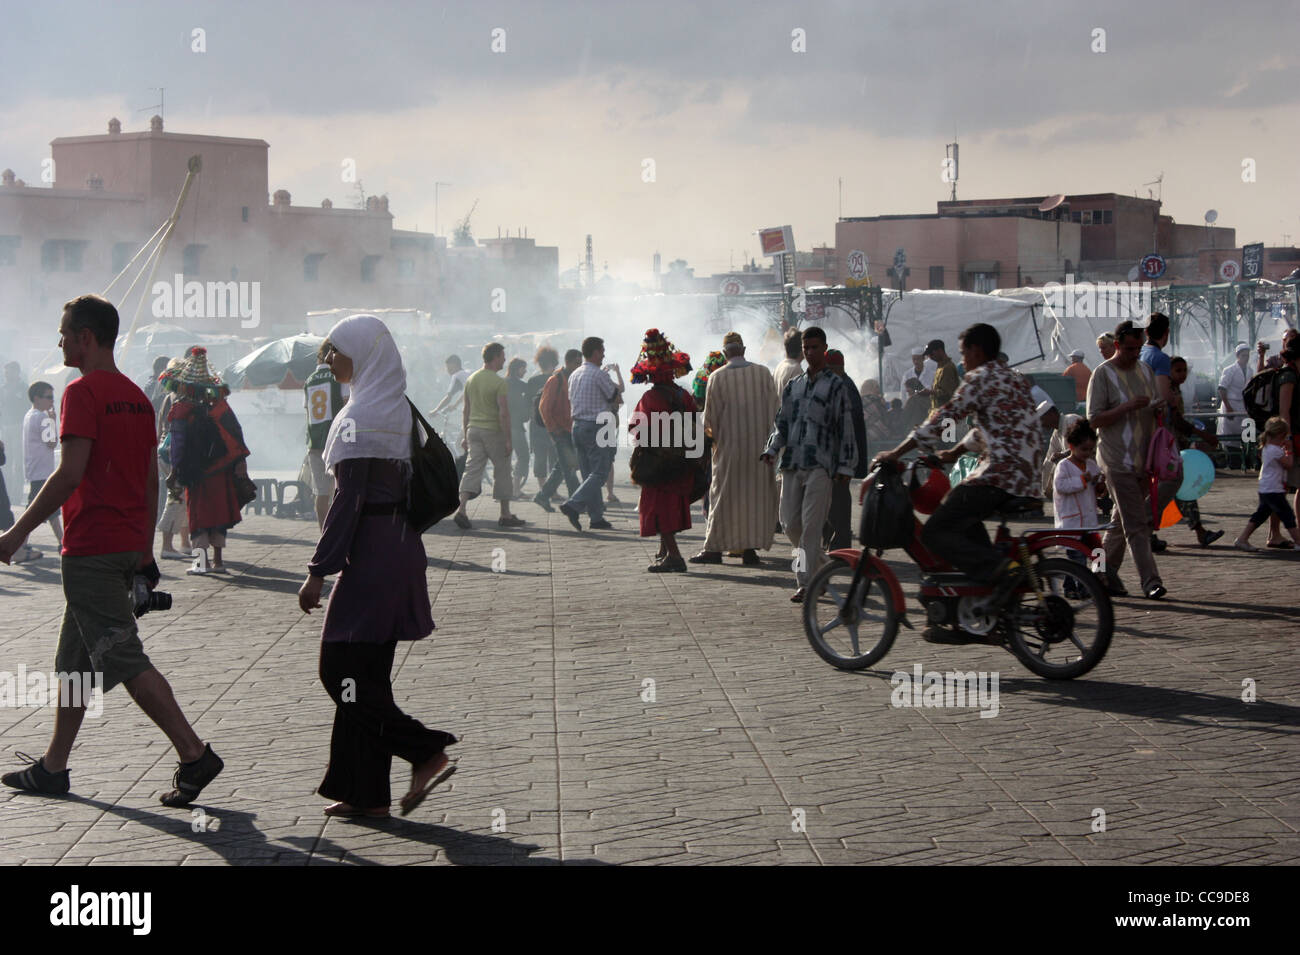 Jemaa el Fna square and market place in the Medina in Marrakech, Morrocco. - Stock Image